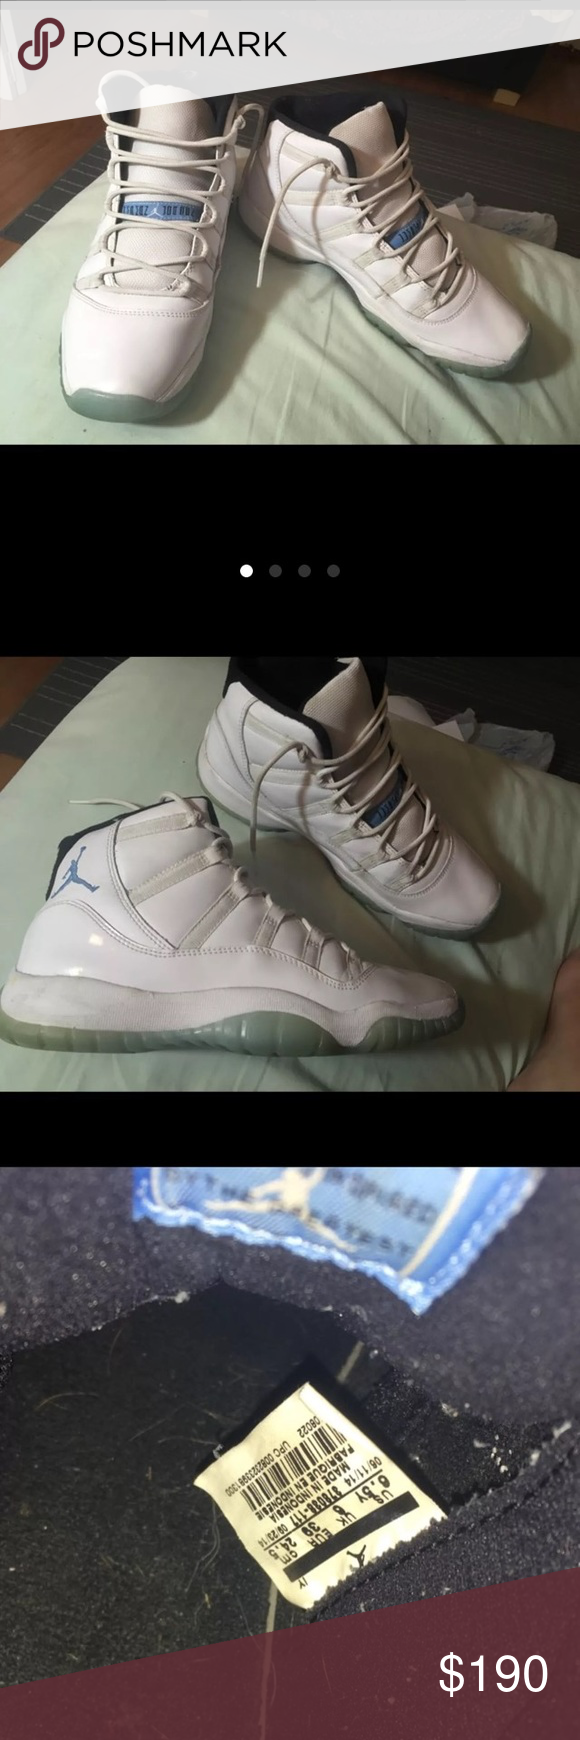 legend blue jordan 11s 💯 send offers good condition size 6.5 youth womans 8.5. will